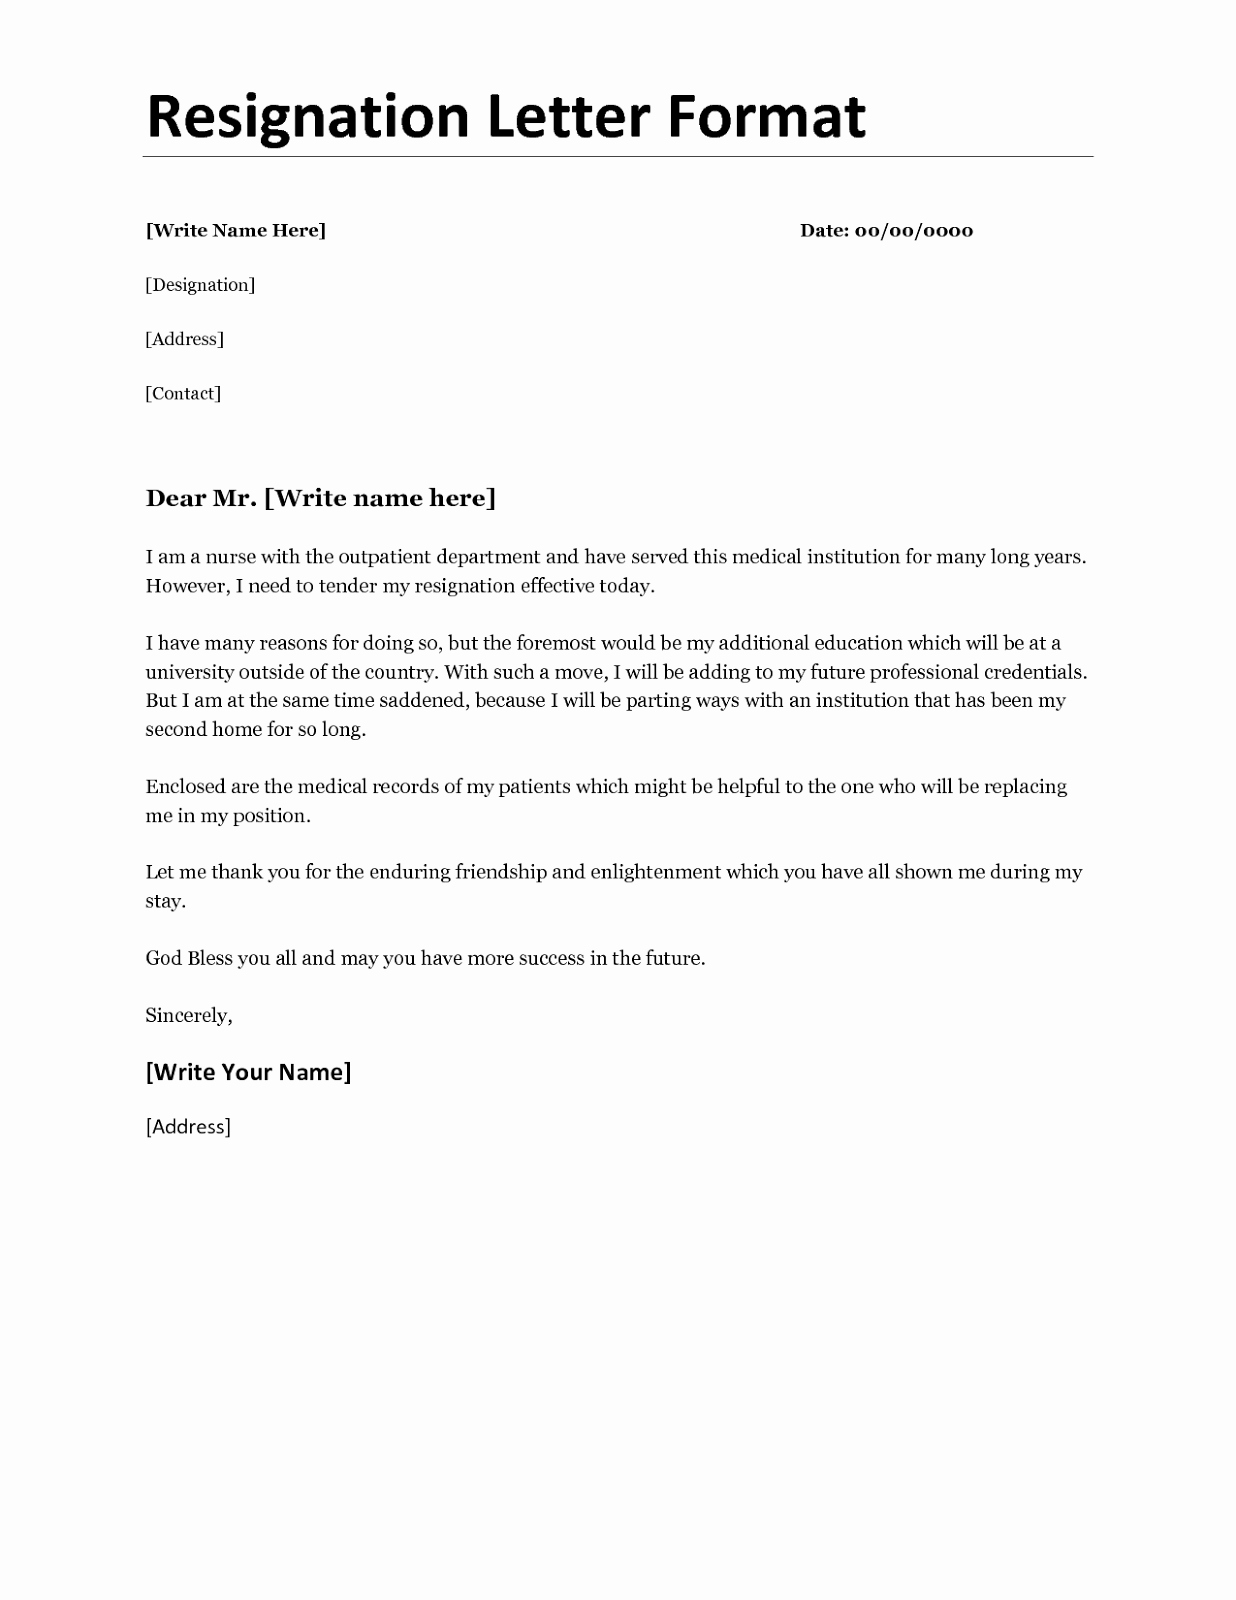 Resignation Letter for Personal Reasons Fresh Resignation Letter format for Personal Reason Document Blogs